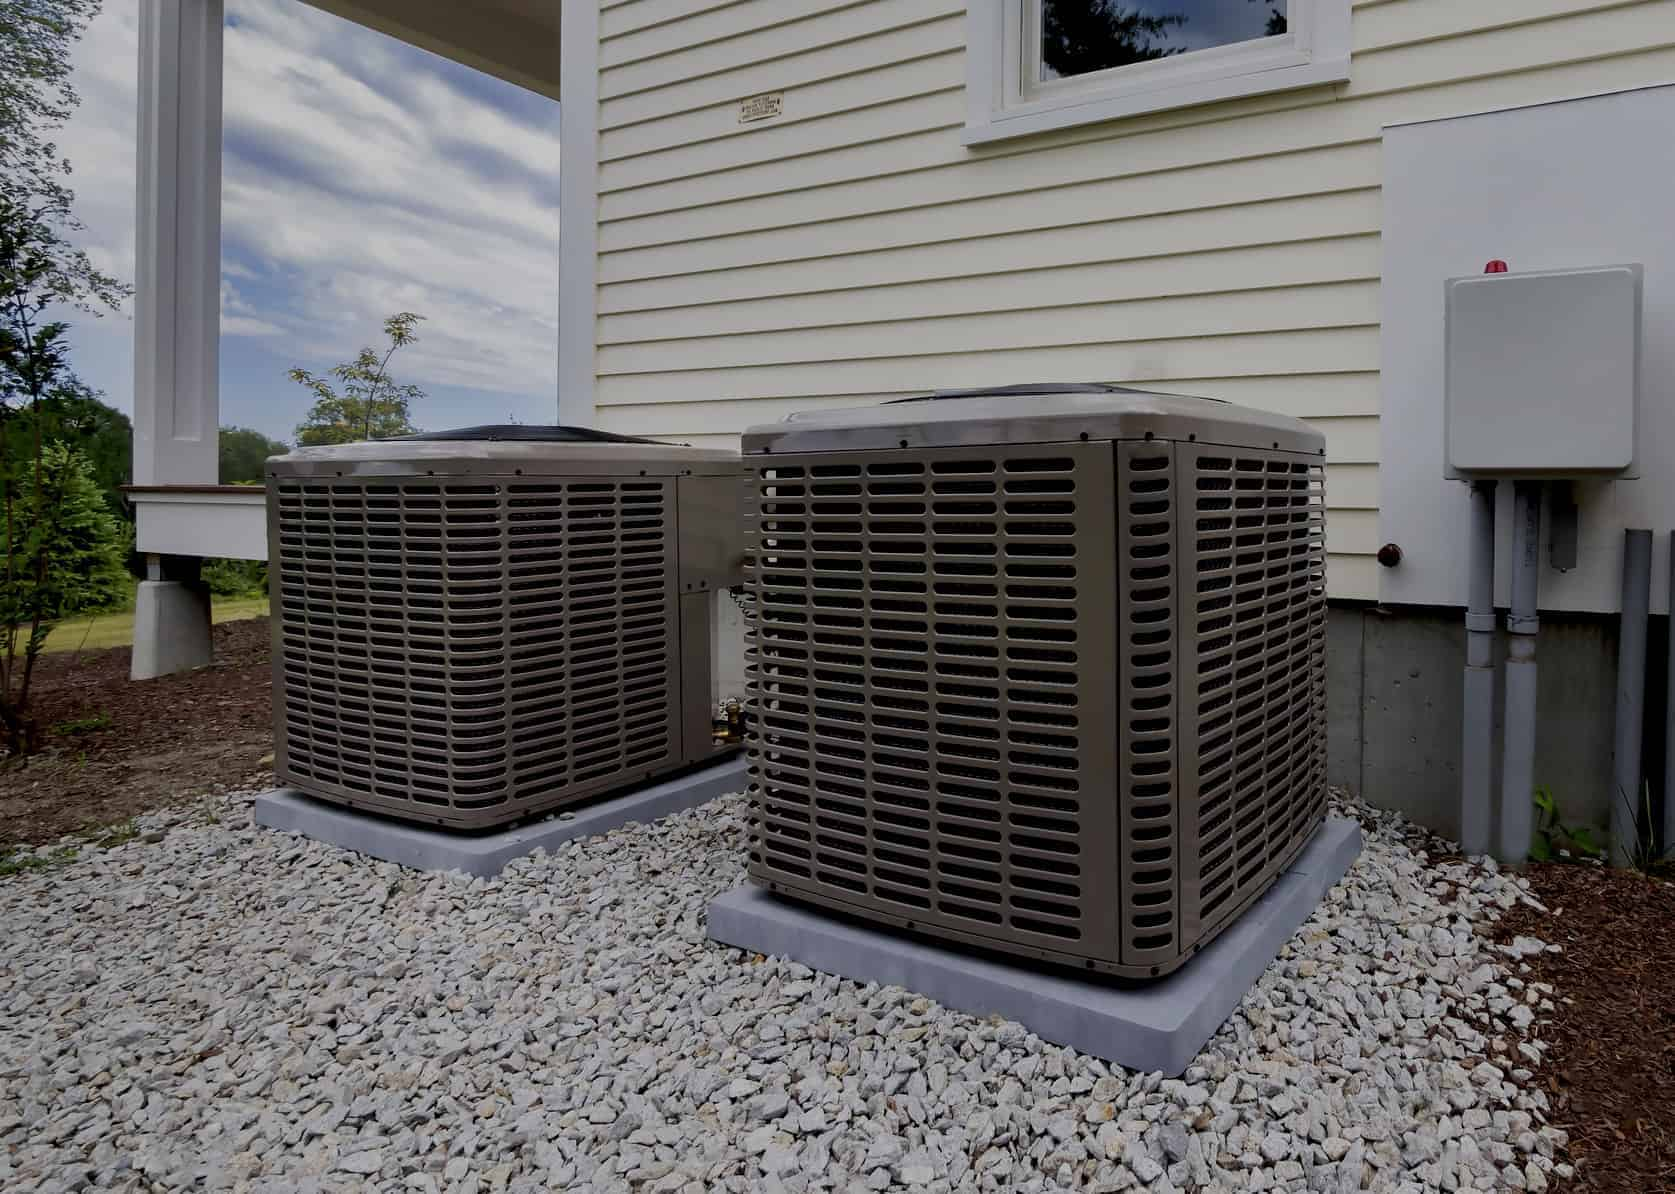 Jenk's #1 HVAC Repair and Service